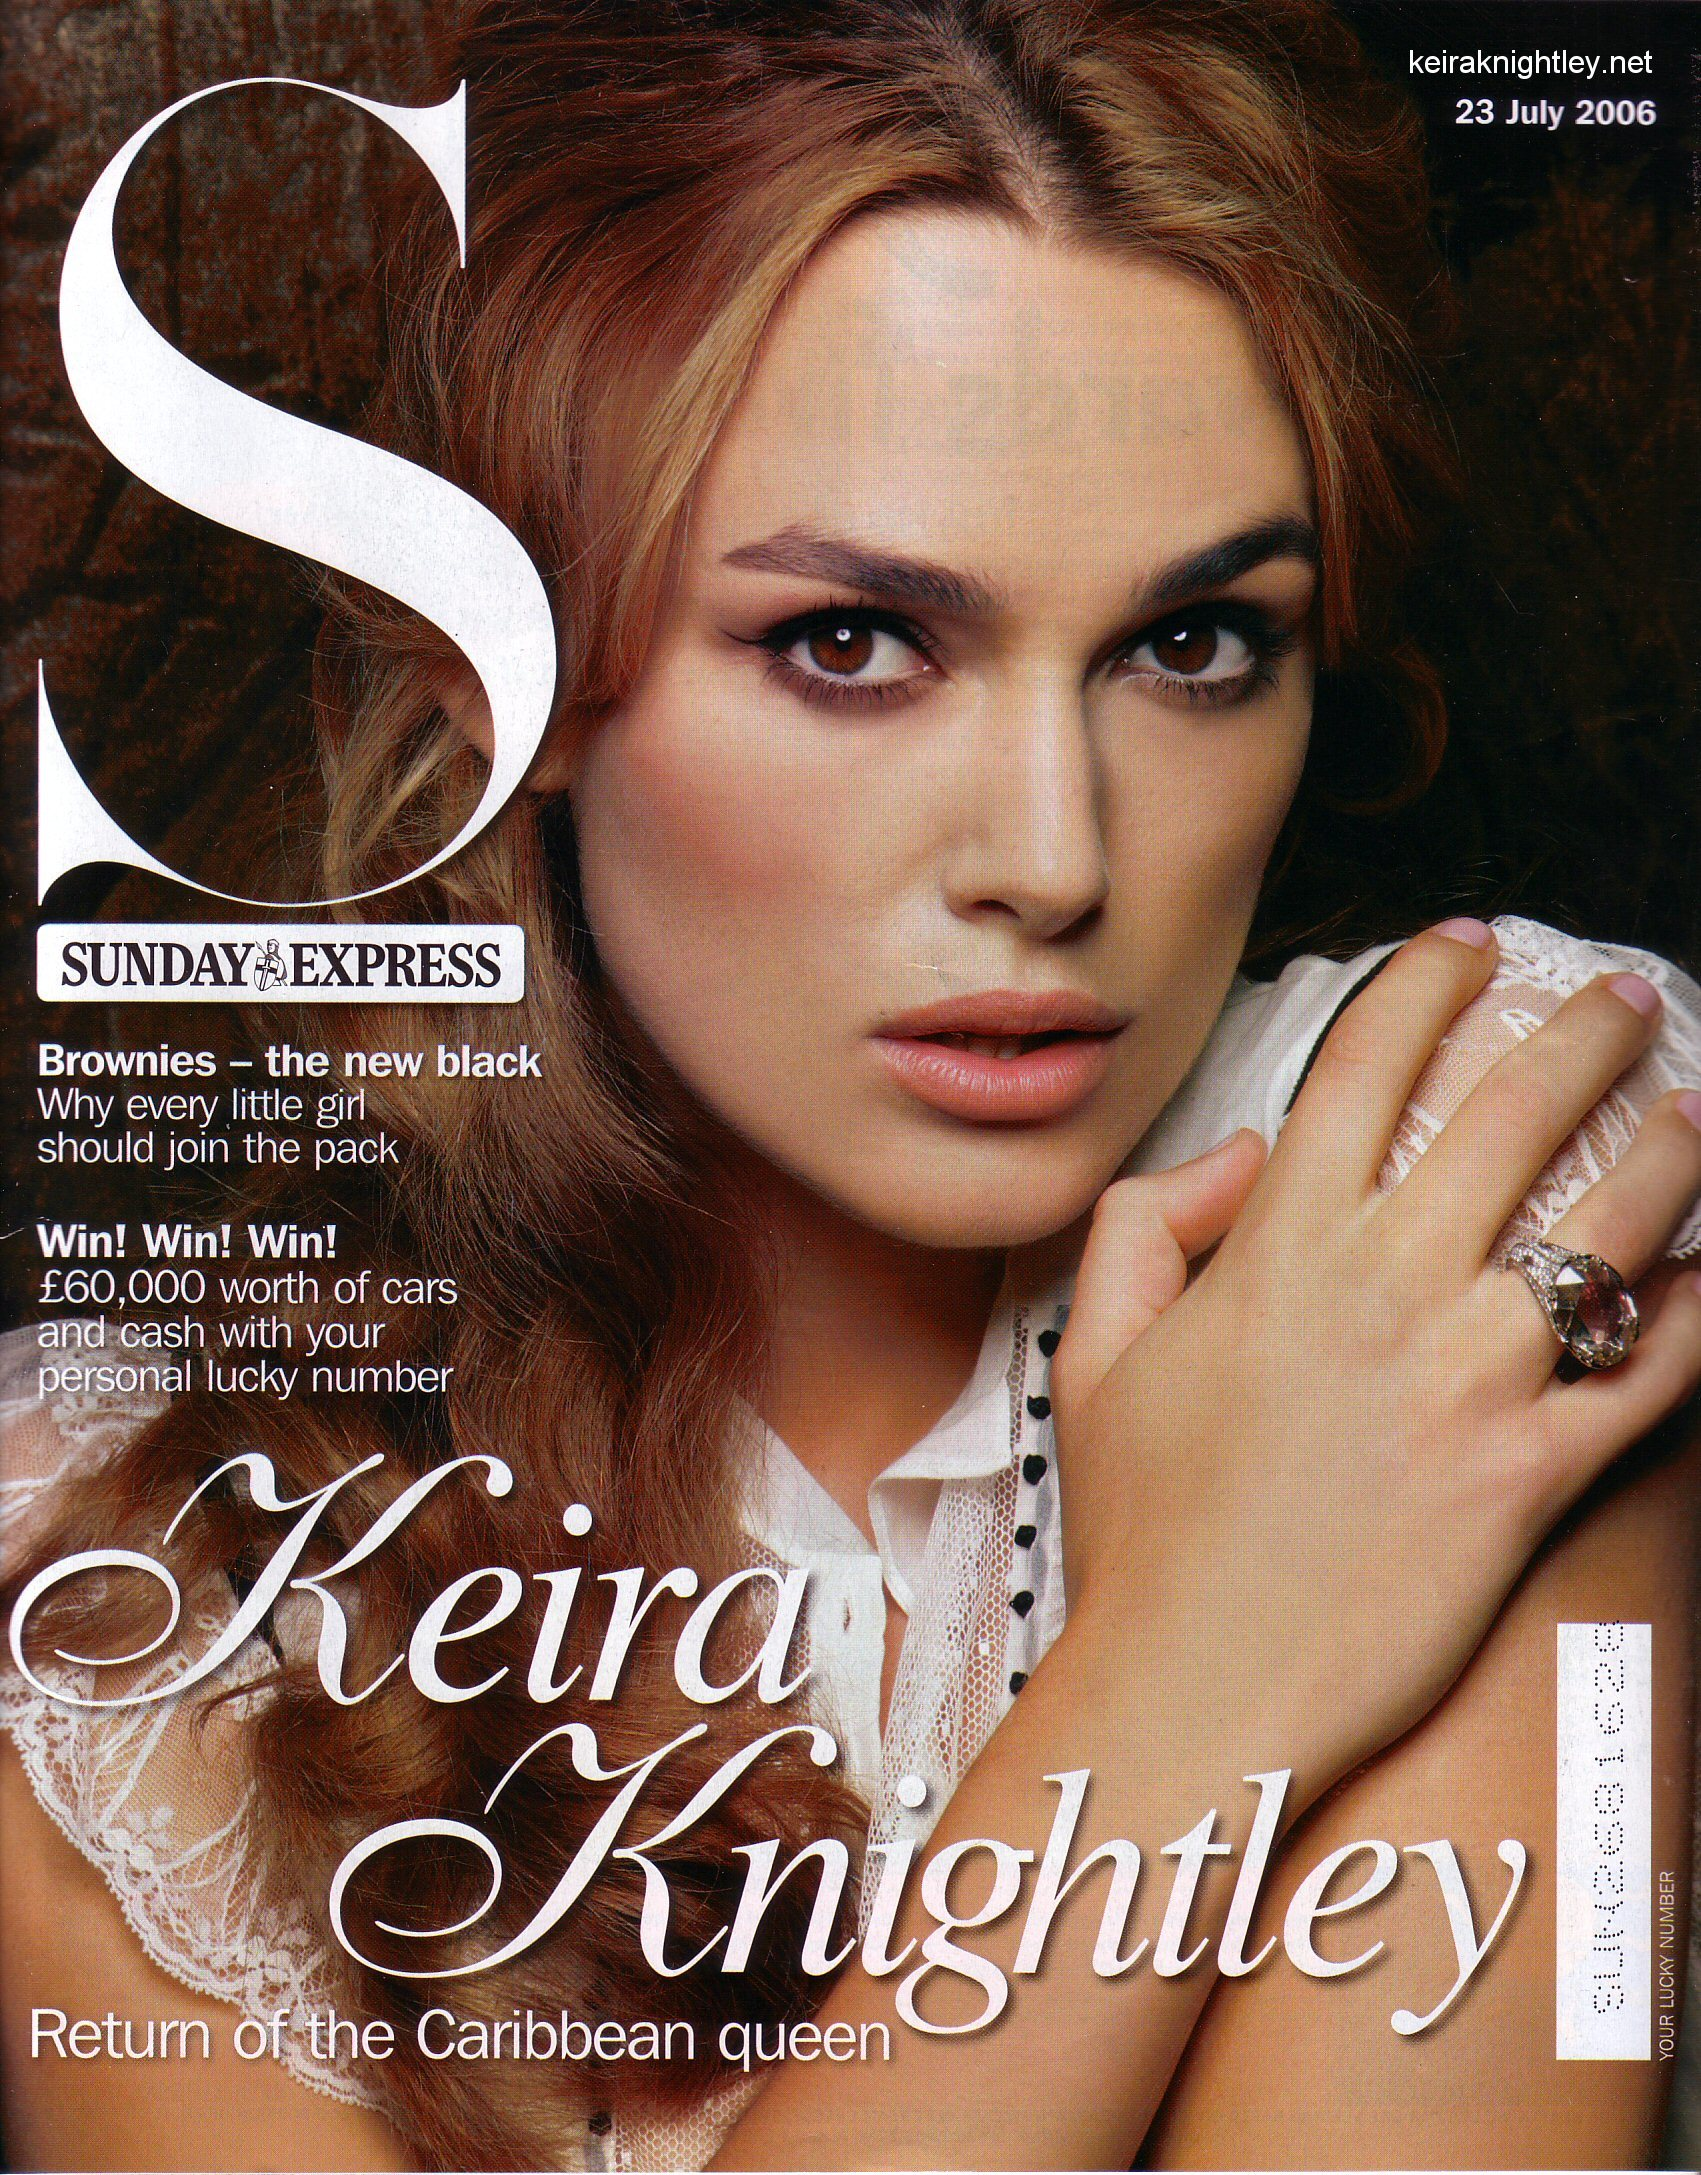 Keira Knightley Magazine covers HD Wallpaper